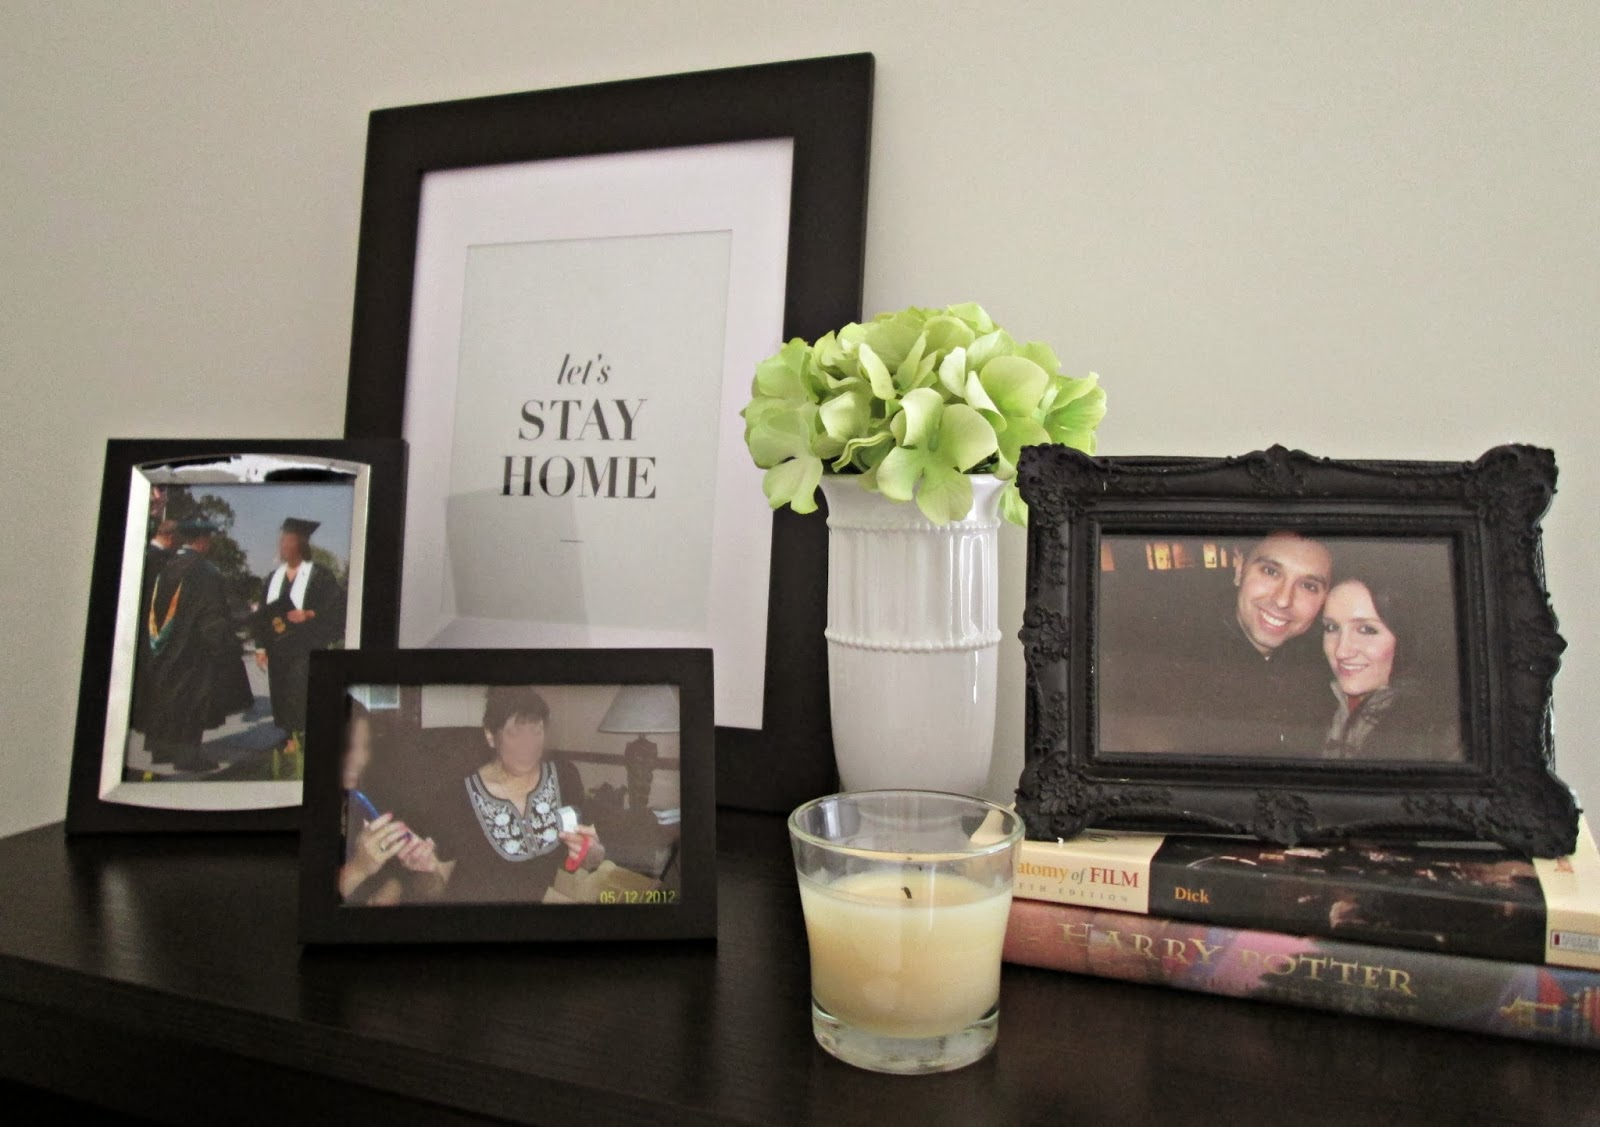 Bookshelf decor featuring picture frames, books, candles and flowers.